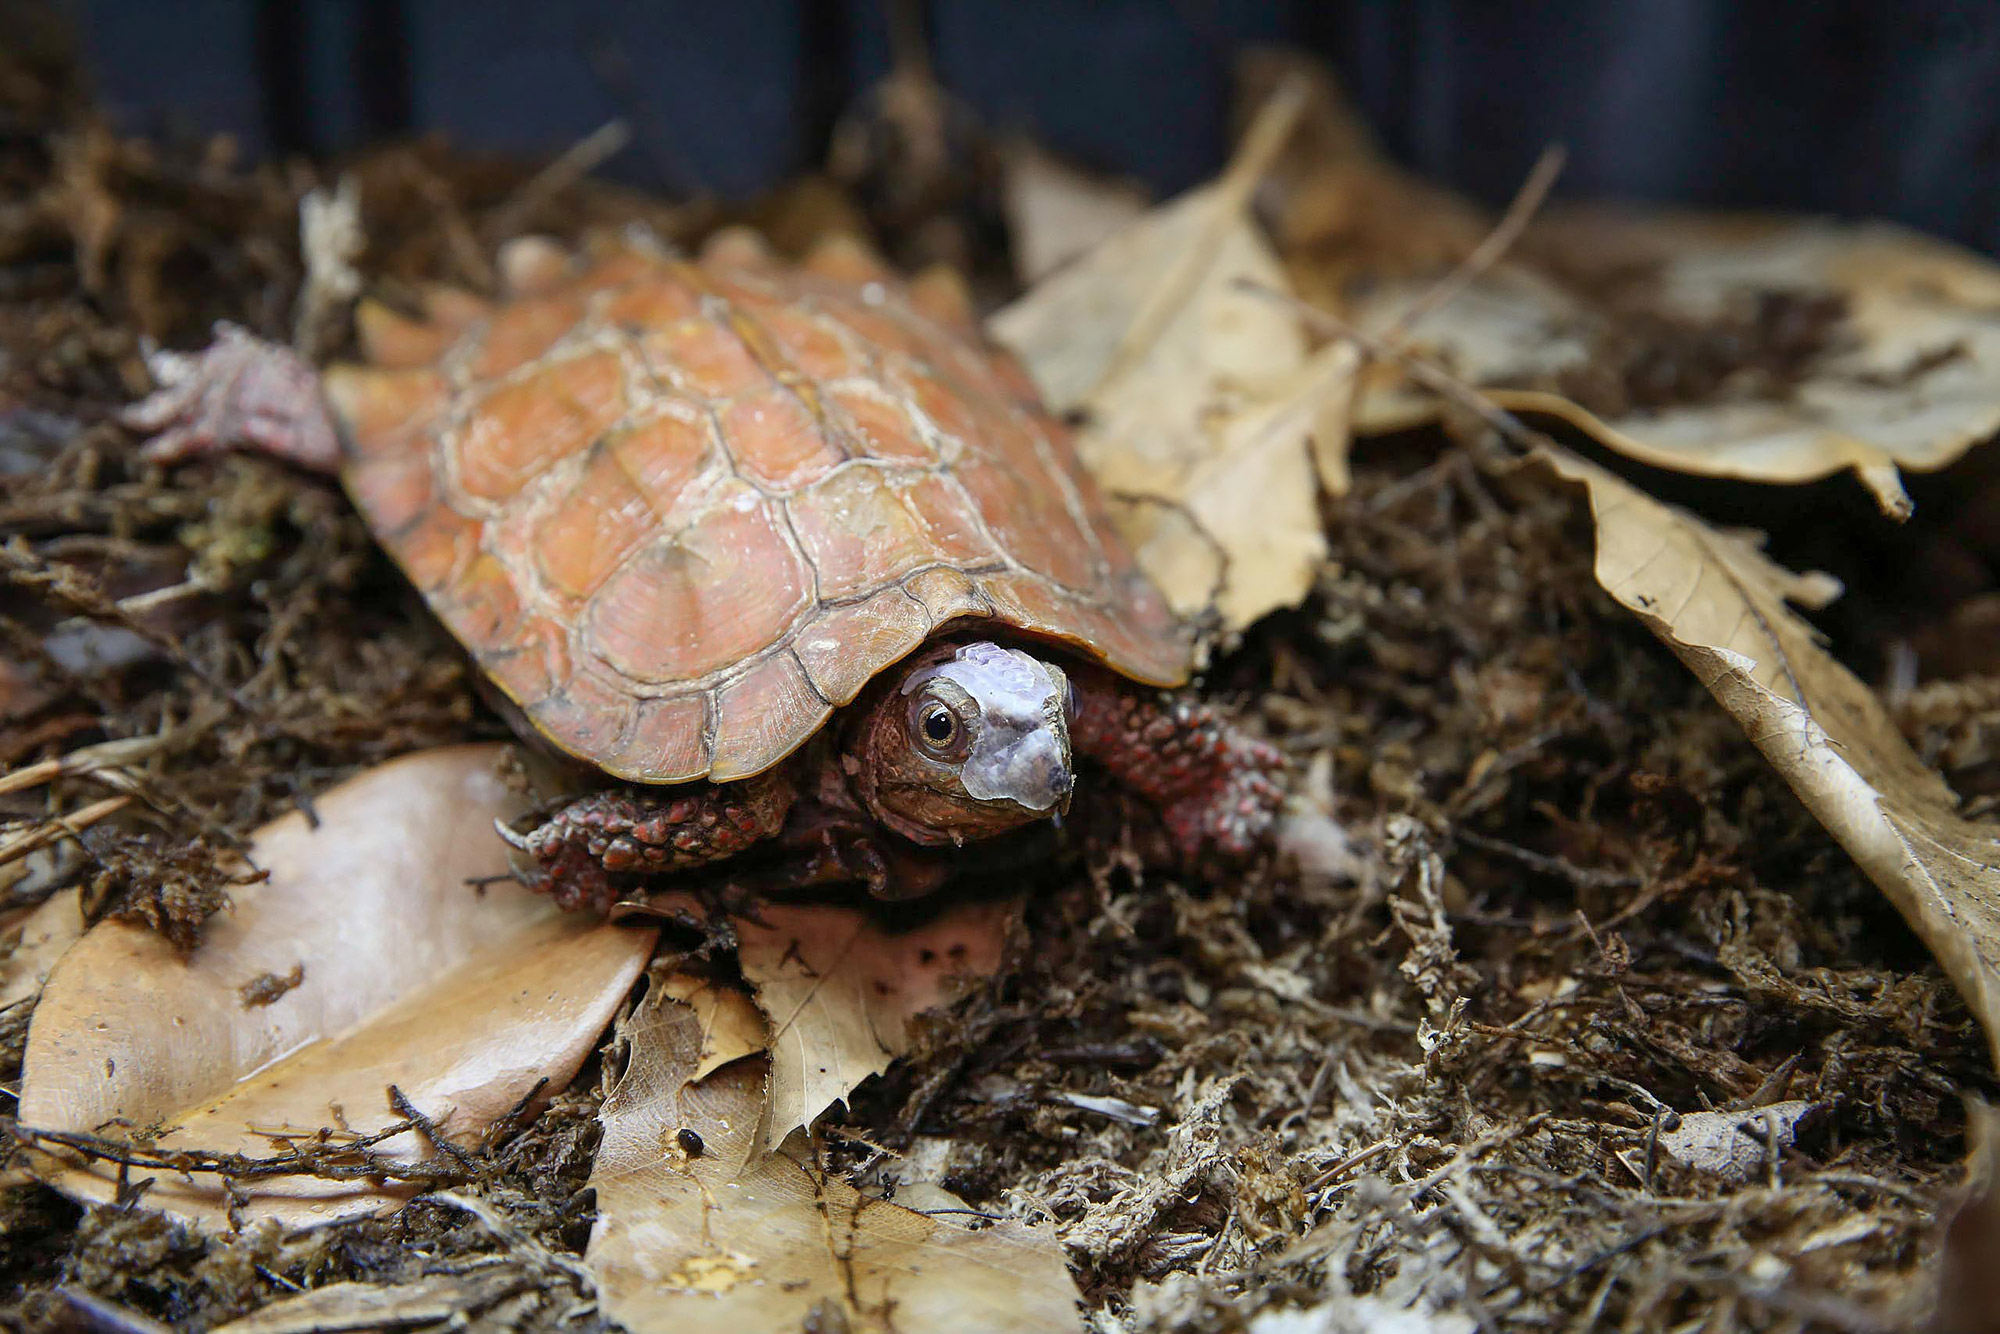 Black-breasted Leaf Turtle, Patches. Credit: Amy Smotherman Burgess